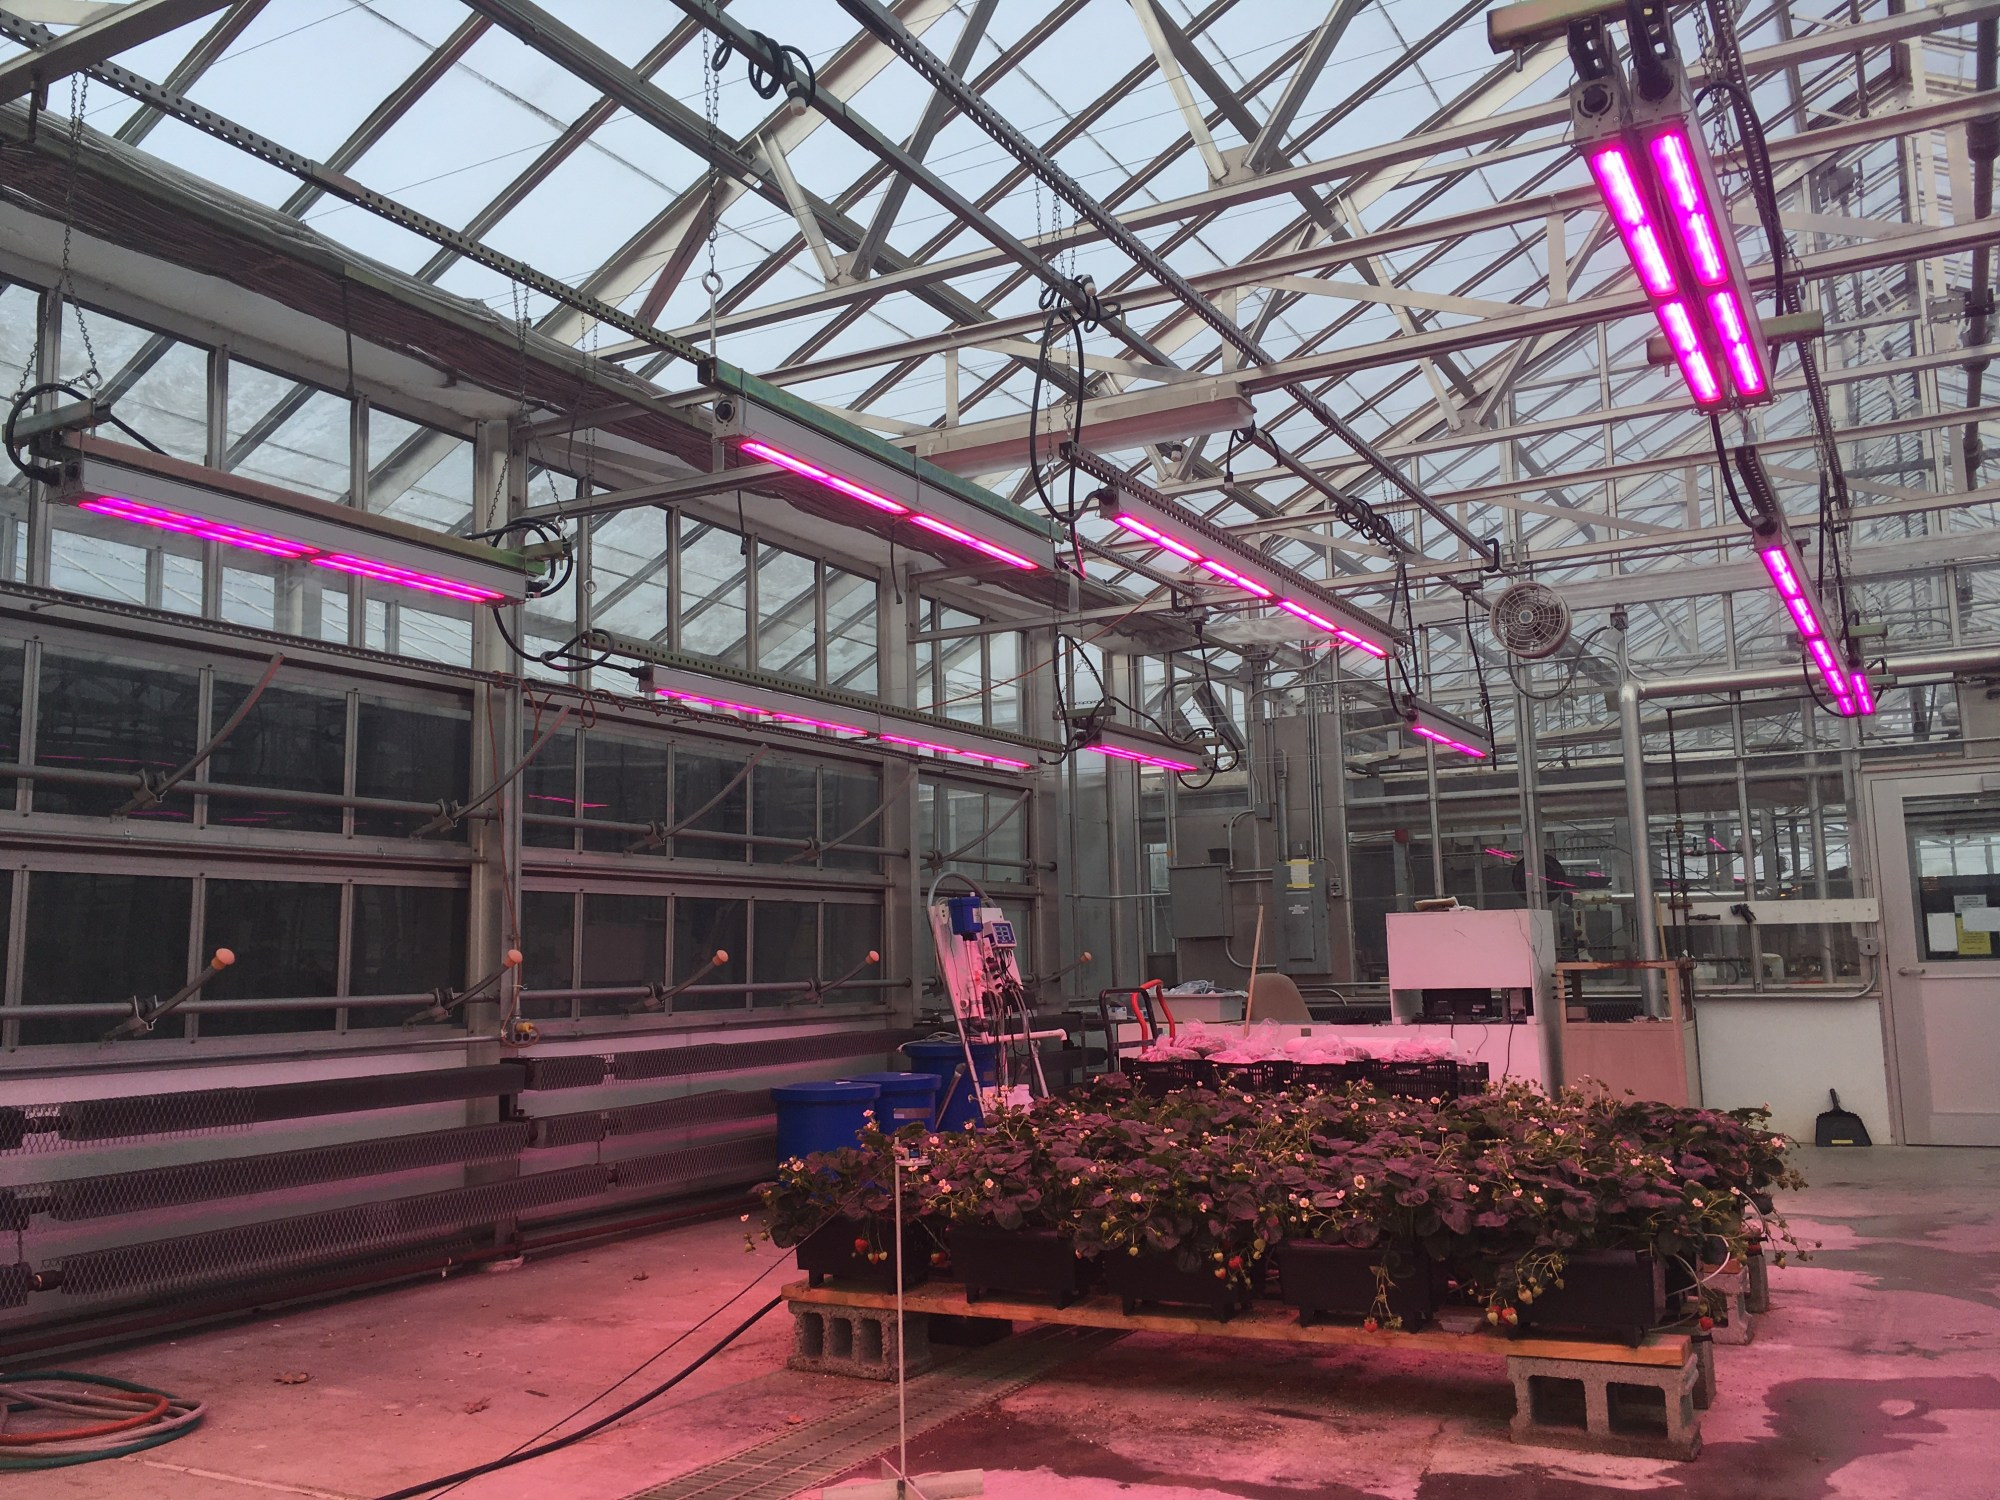 One of the common issues encountered by growers who have installed grow lights is the lack of light uniformity which can be caused by undersizing the number of fixtures.